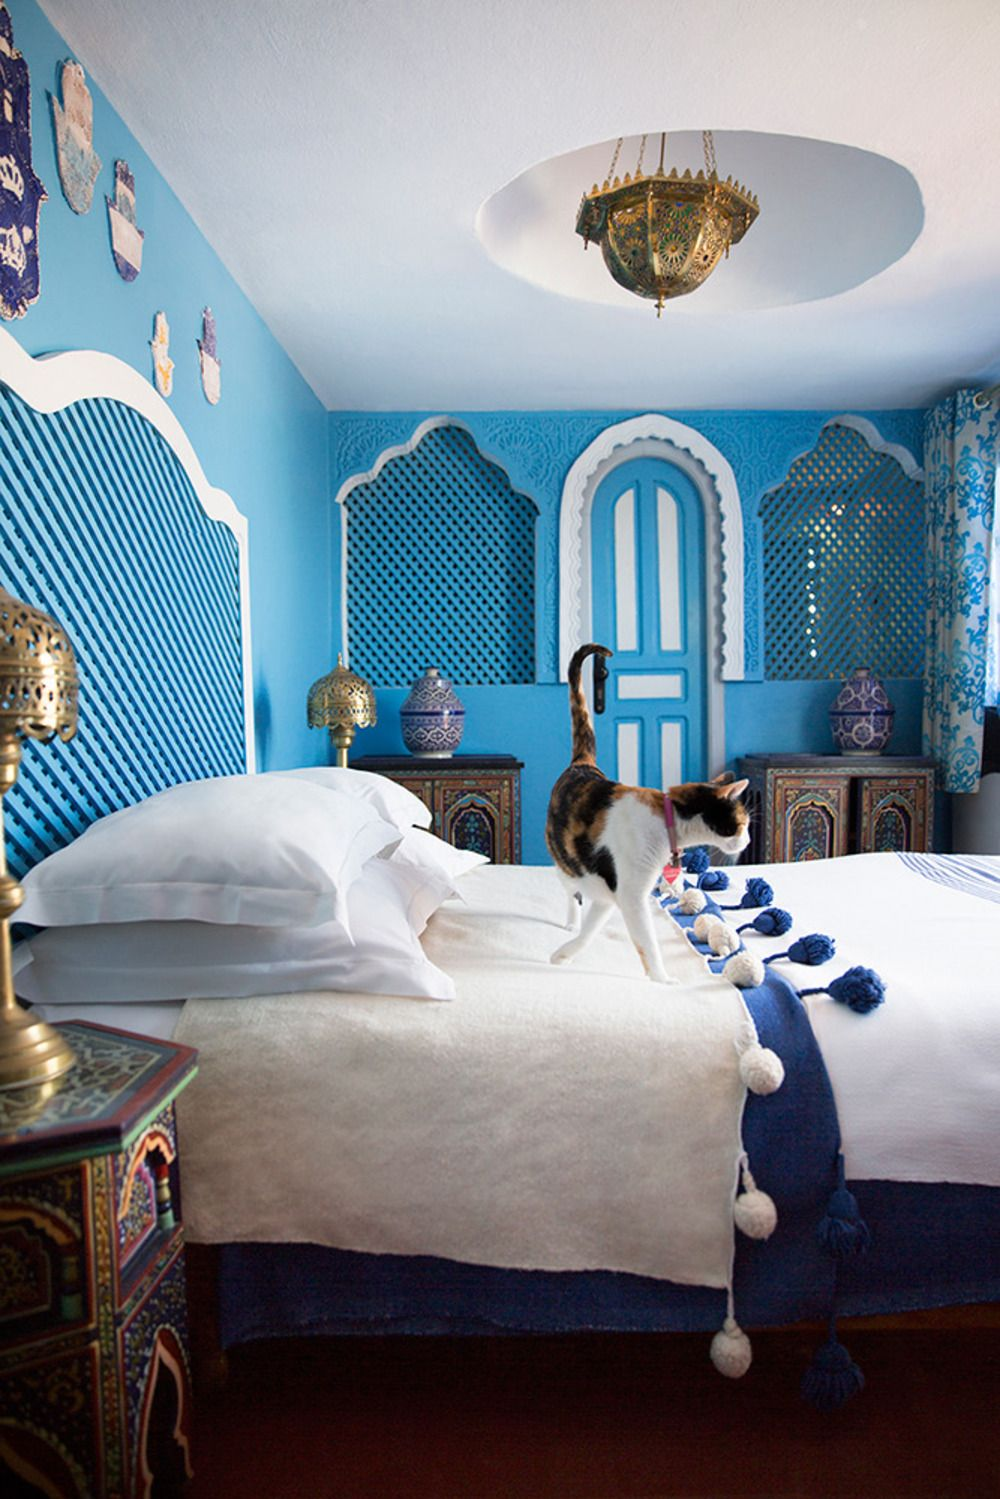 Exotic moroccan bedroom decorating light and deep purple colors - Color Me Spa Exotic Style This Proves Blue Can Be Warm Blue And Tangier